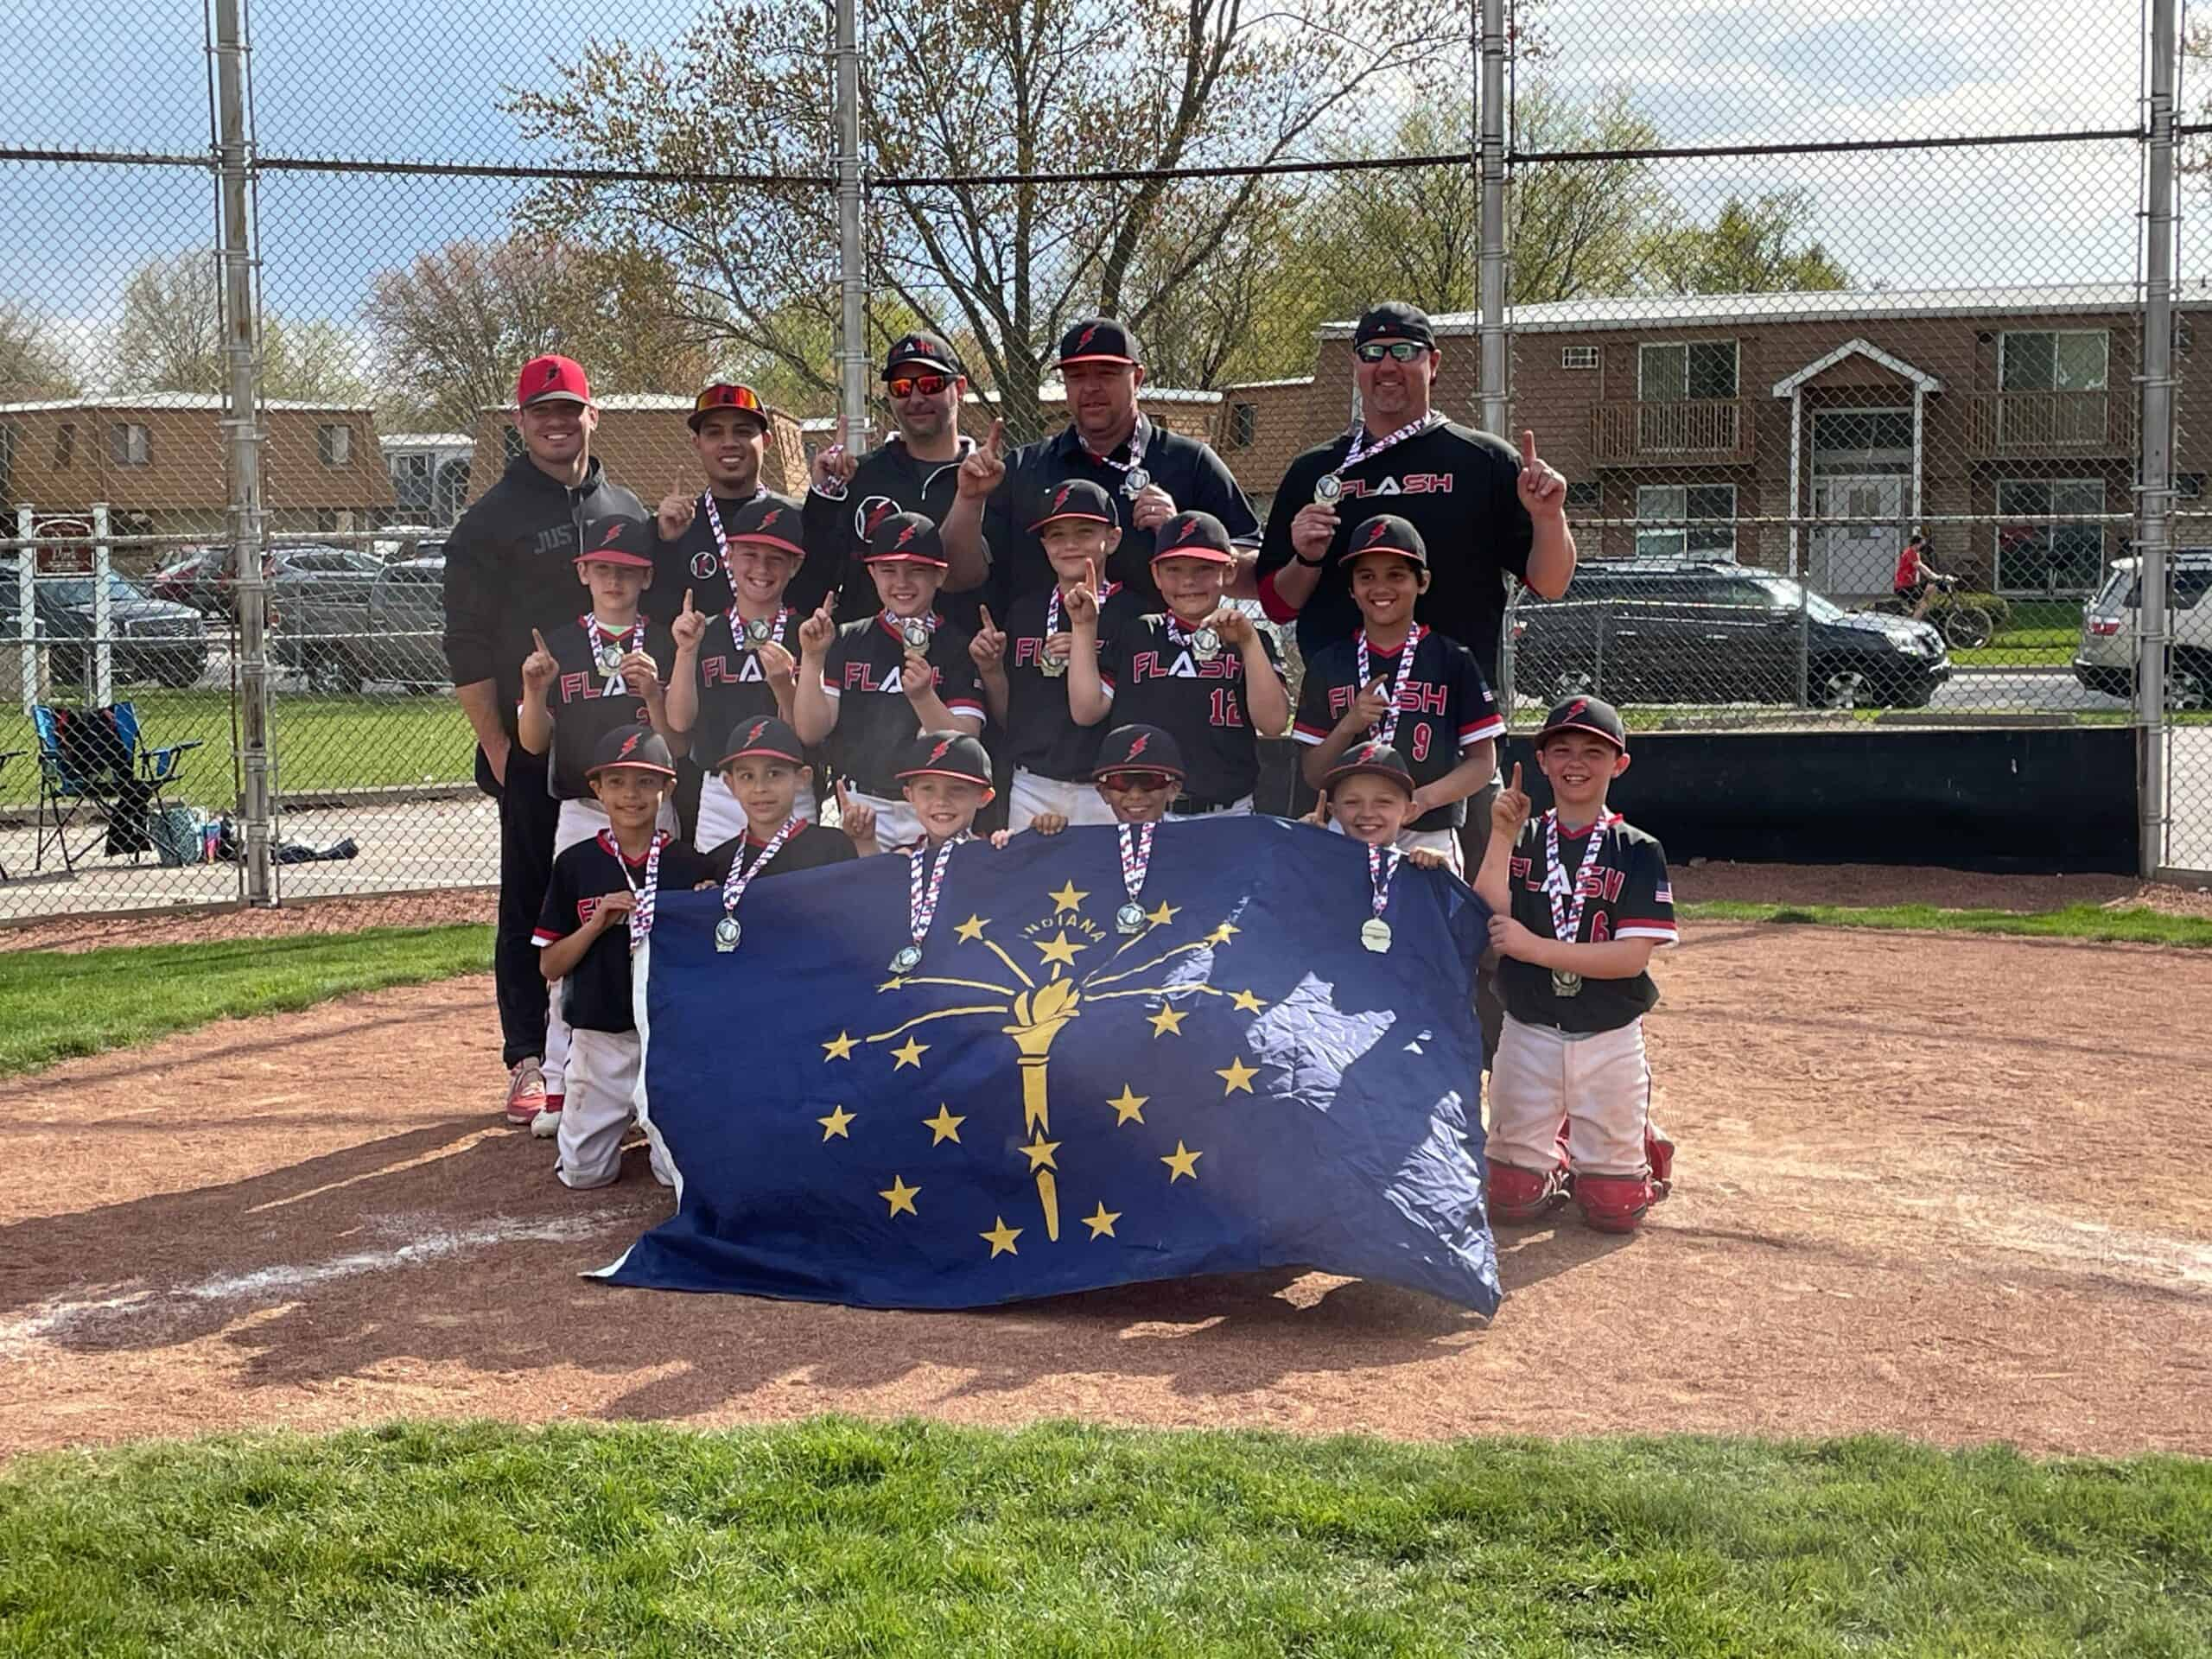 9U Flash Champions baseball team holding a banner wearing championship medals for Line Drive tournament